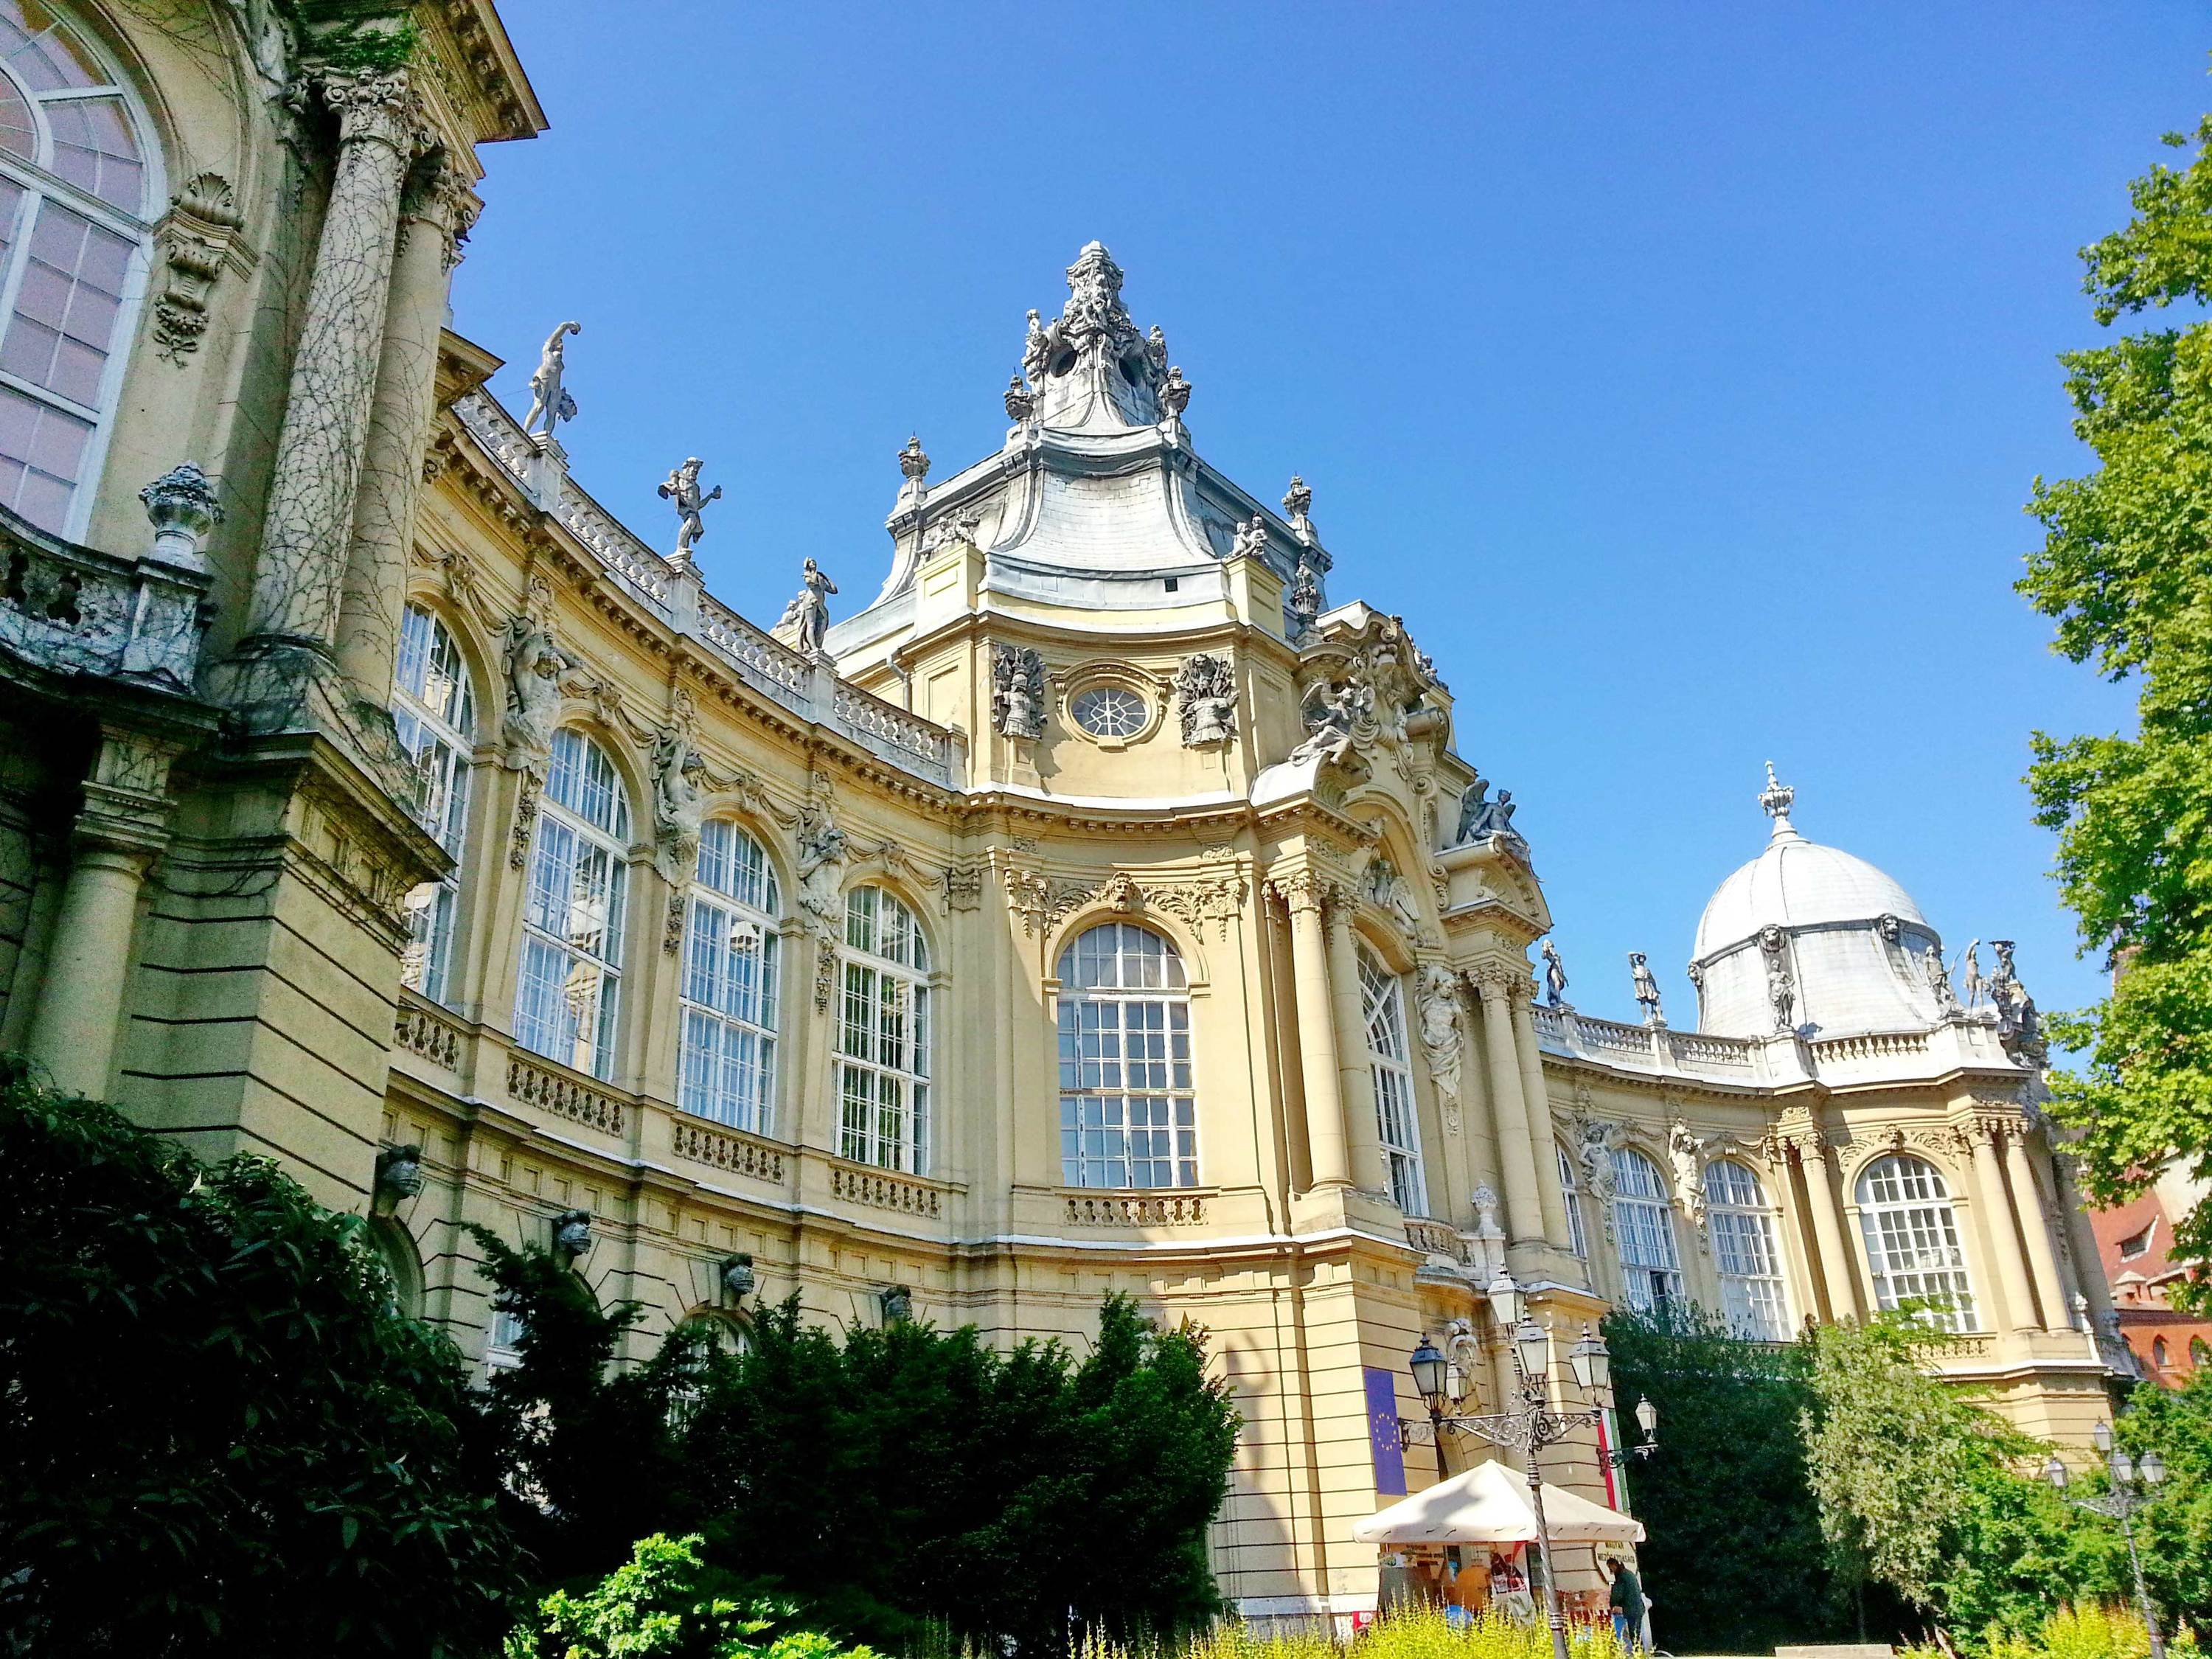 The exterior of the Museum of Agriculture in Budapest